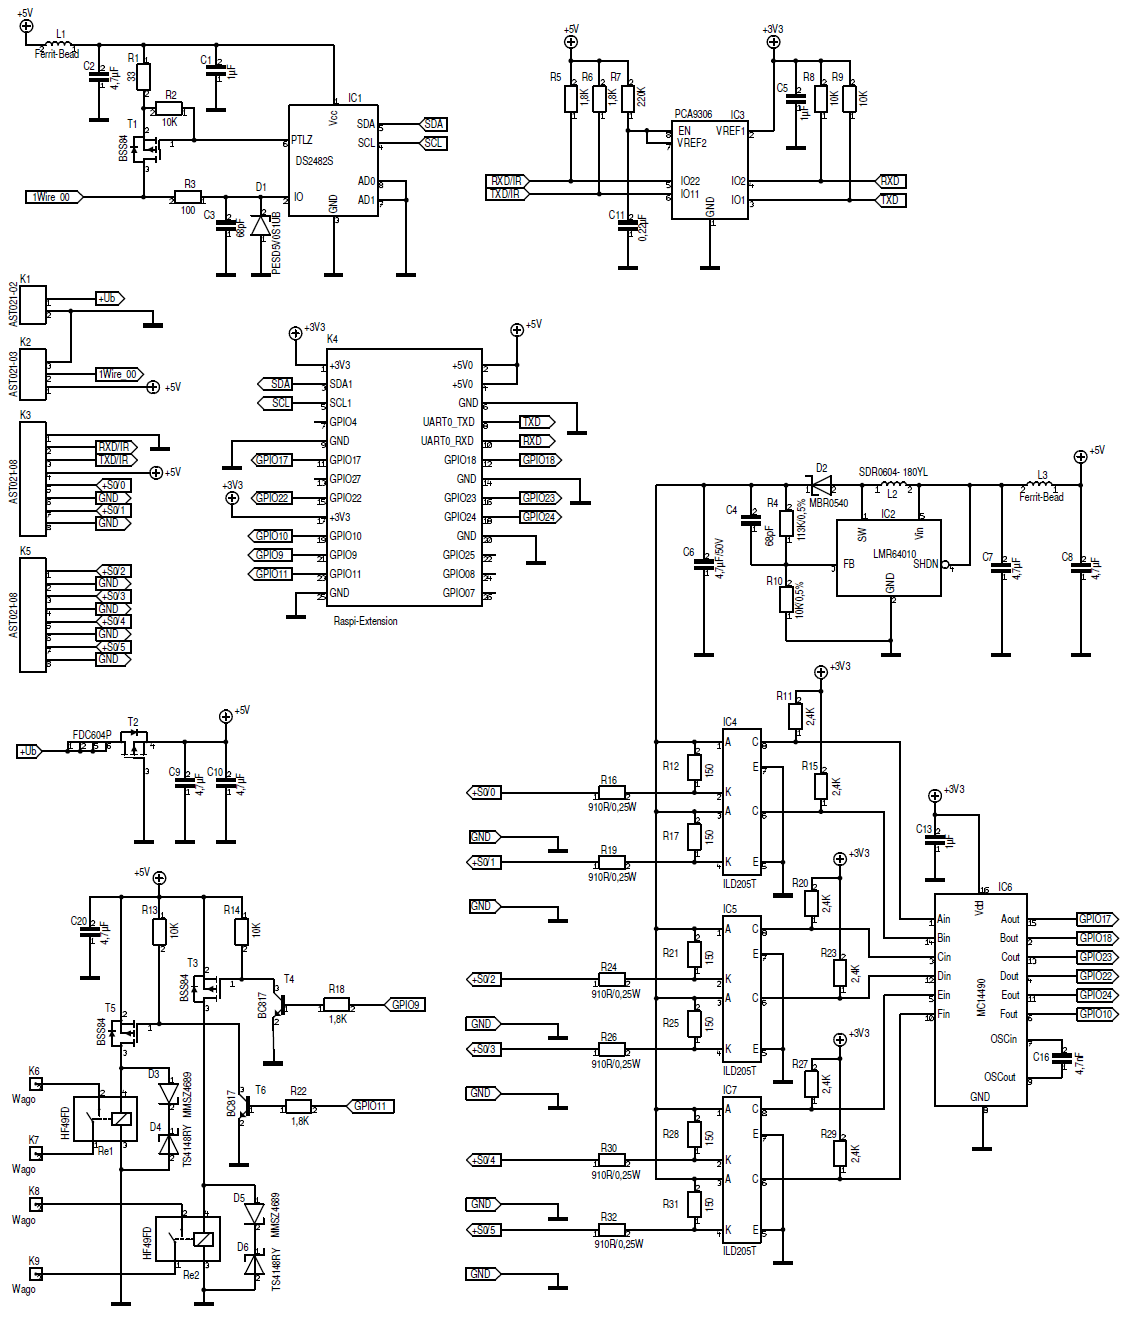 Uart Getting Garbage Raspberry Pi Forums Usb Rs232 Converter Circuit Schematic Summarizing The Rx Tx Has 5v There Is A 33v Inside And Enocean Rs485 Have As Well Theoretically